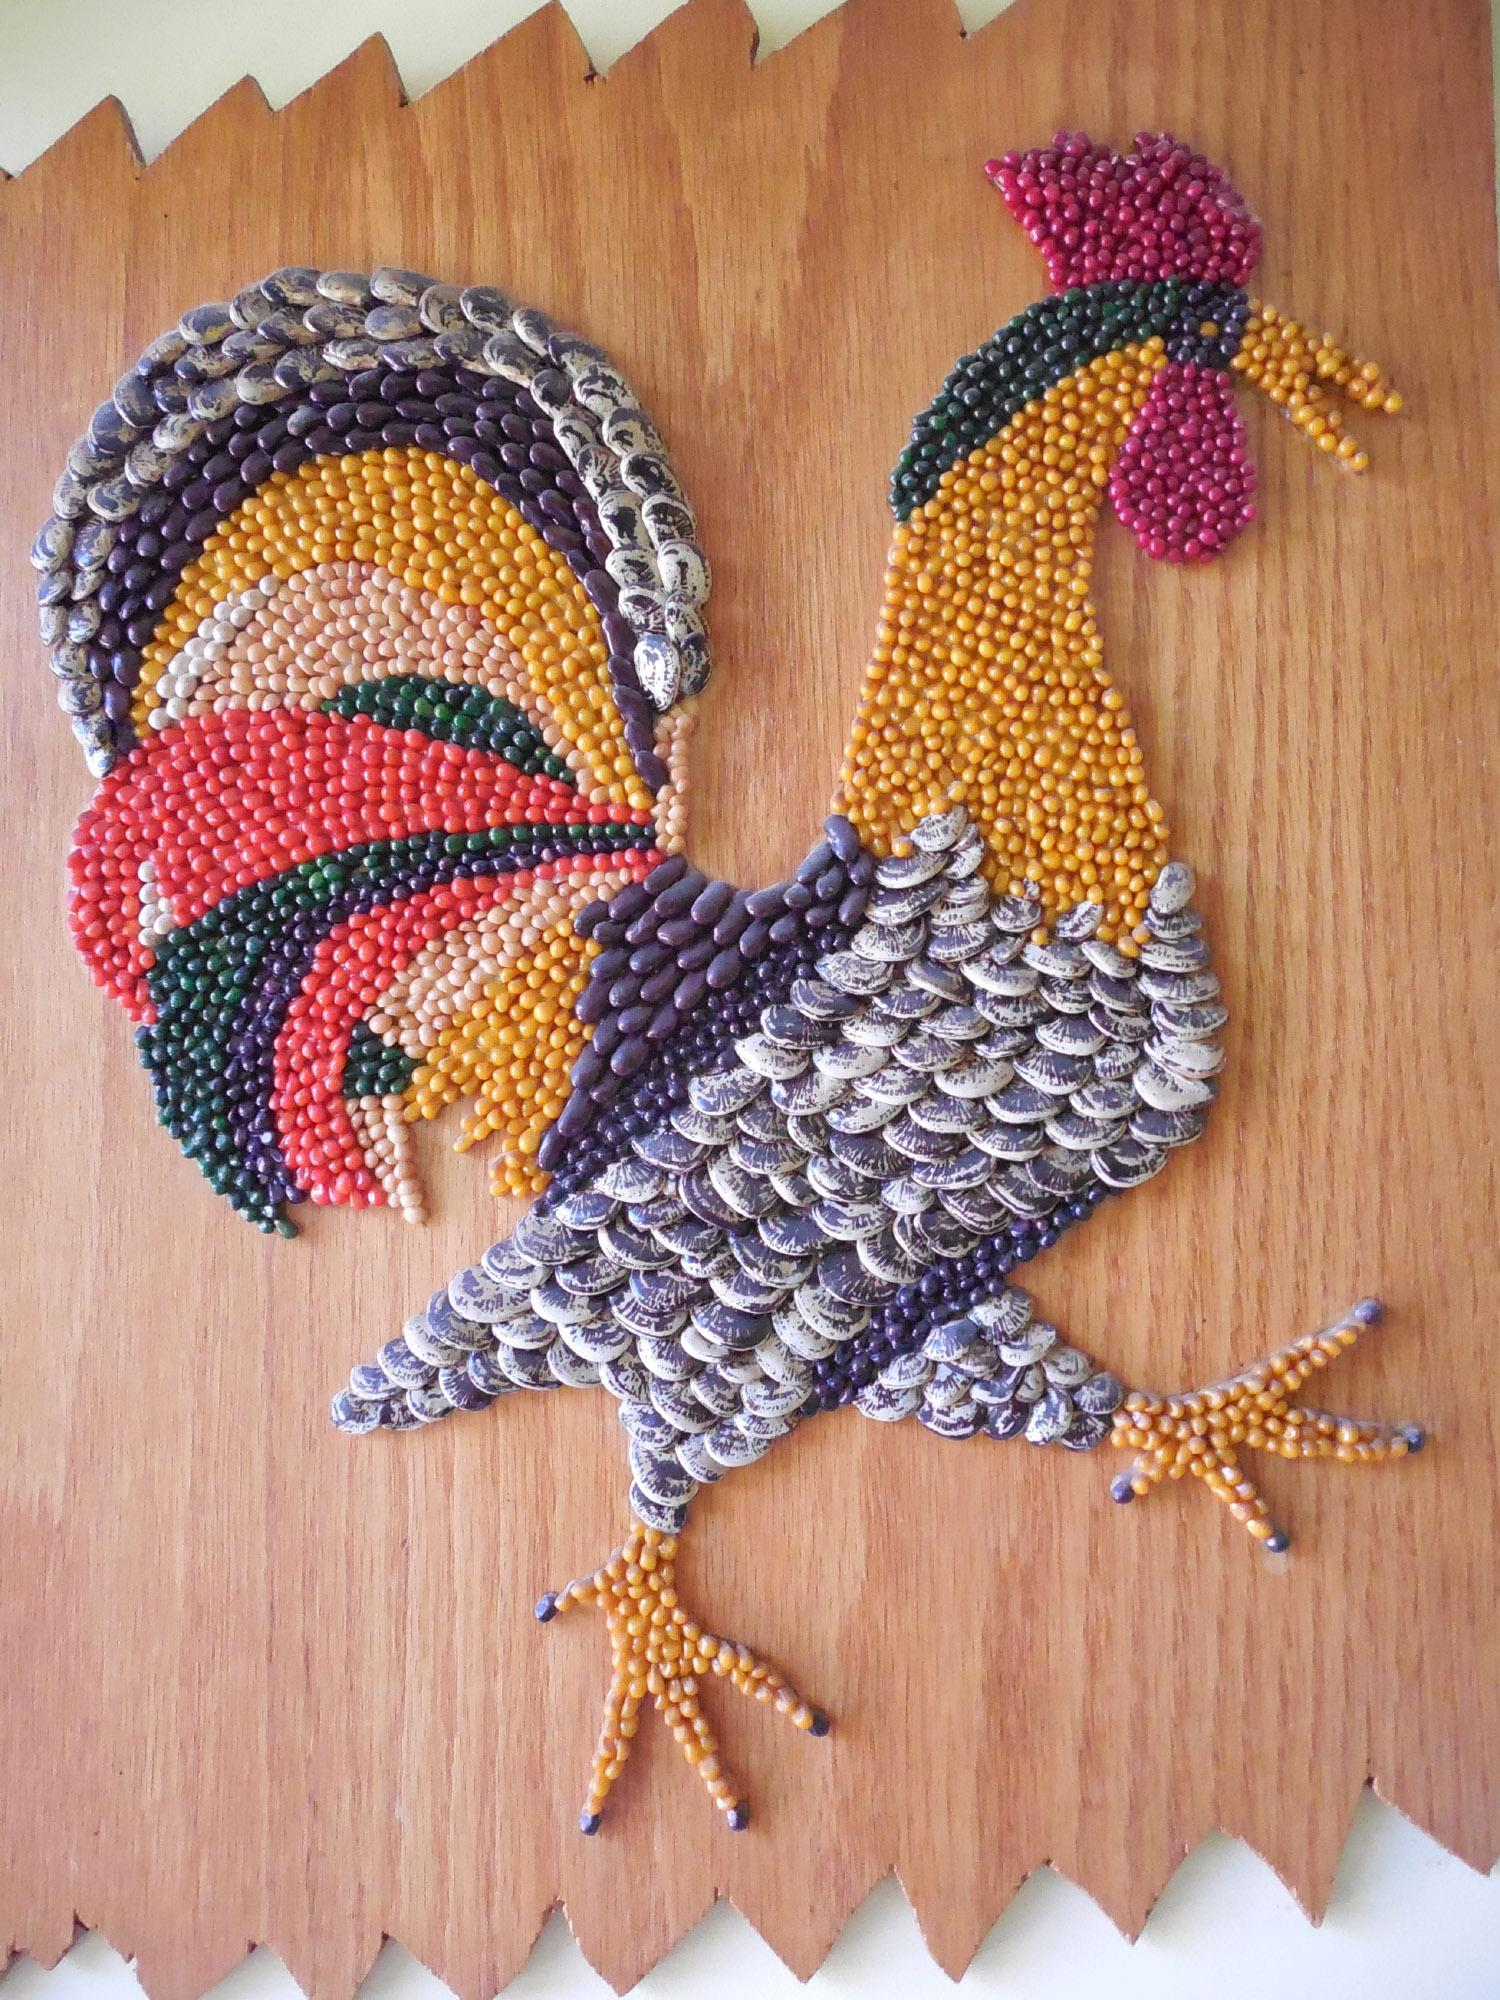 Vintage Folk Art Rooster Wall Hanging Made From Seeds